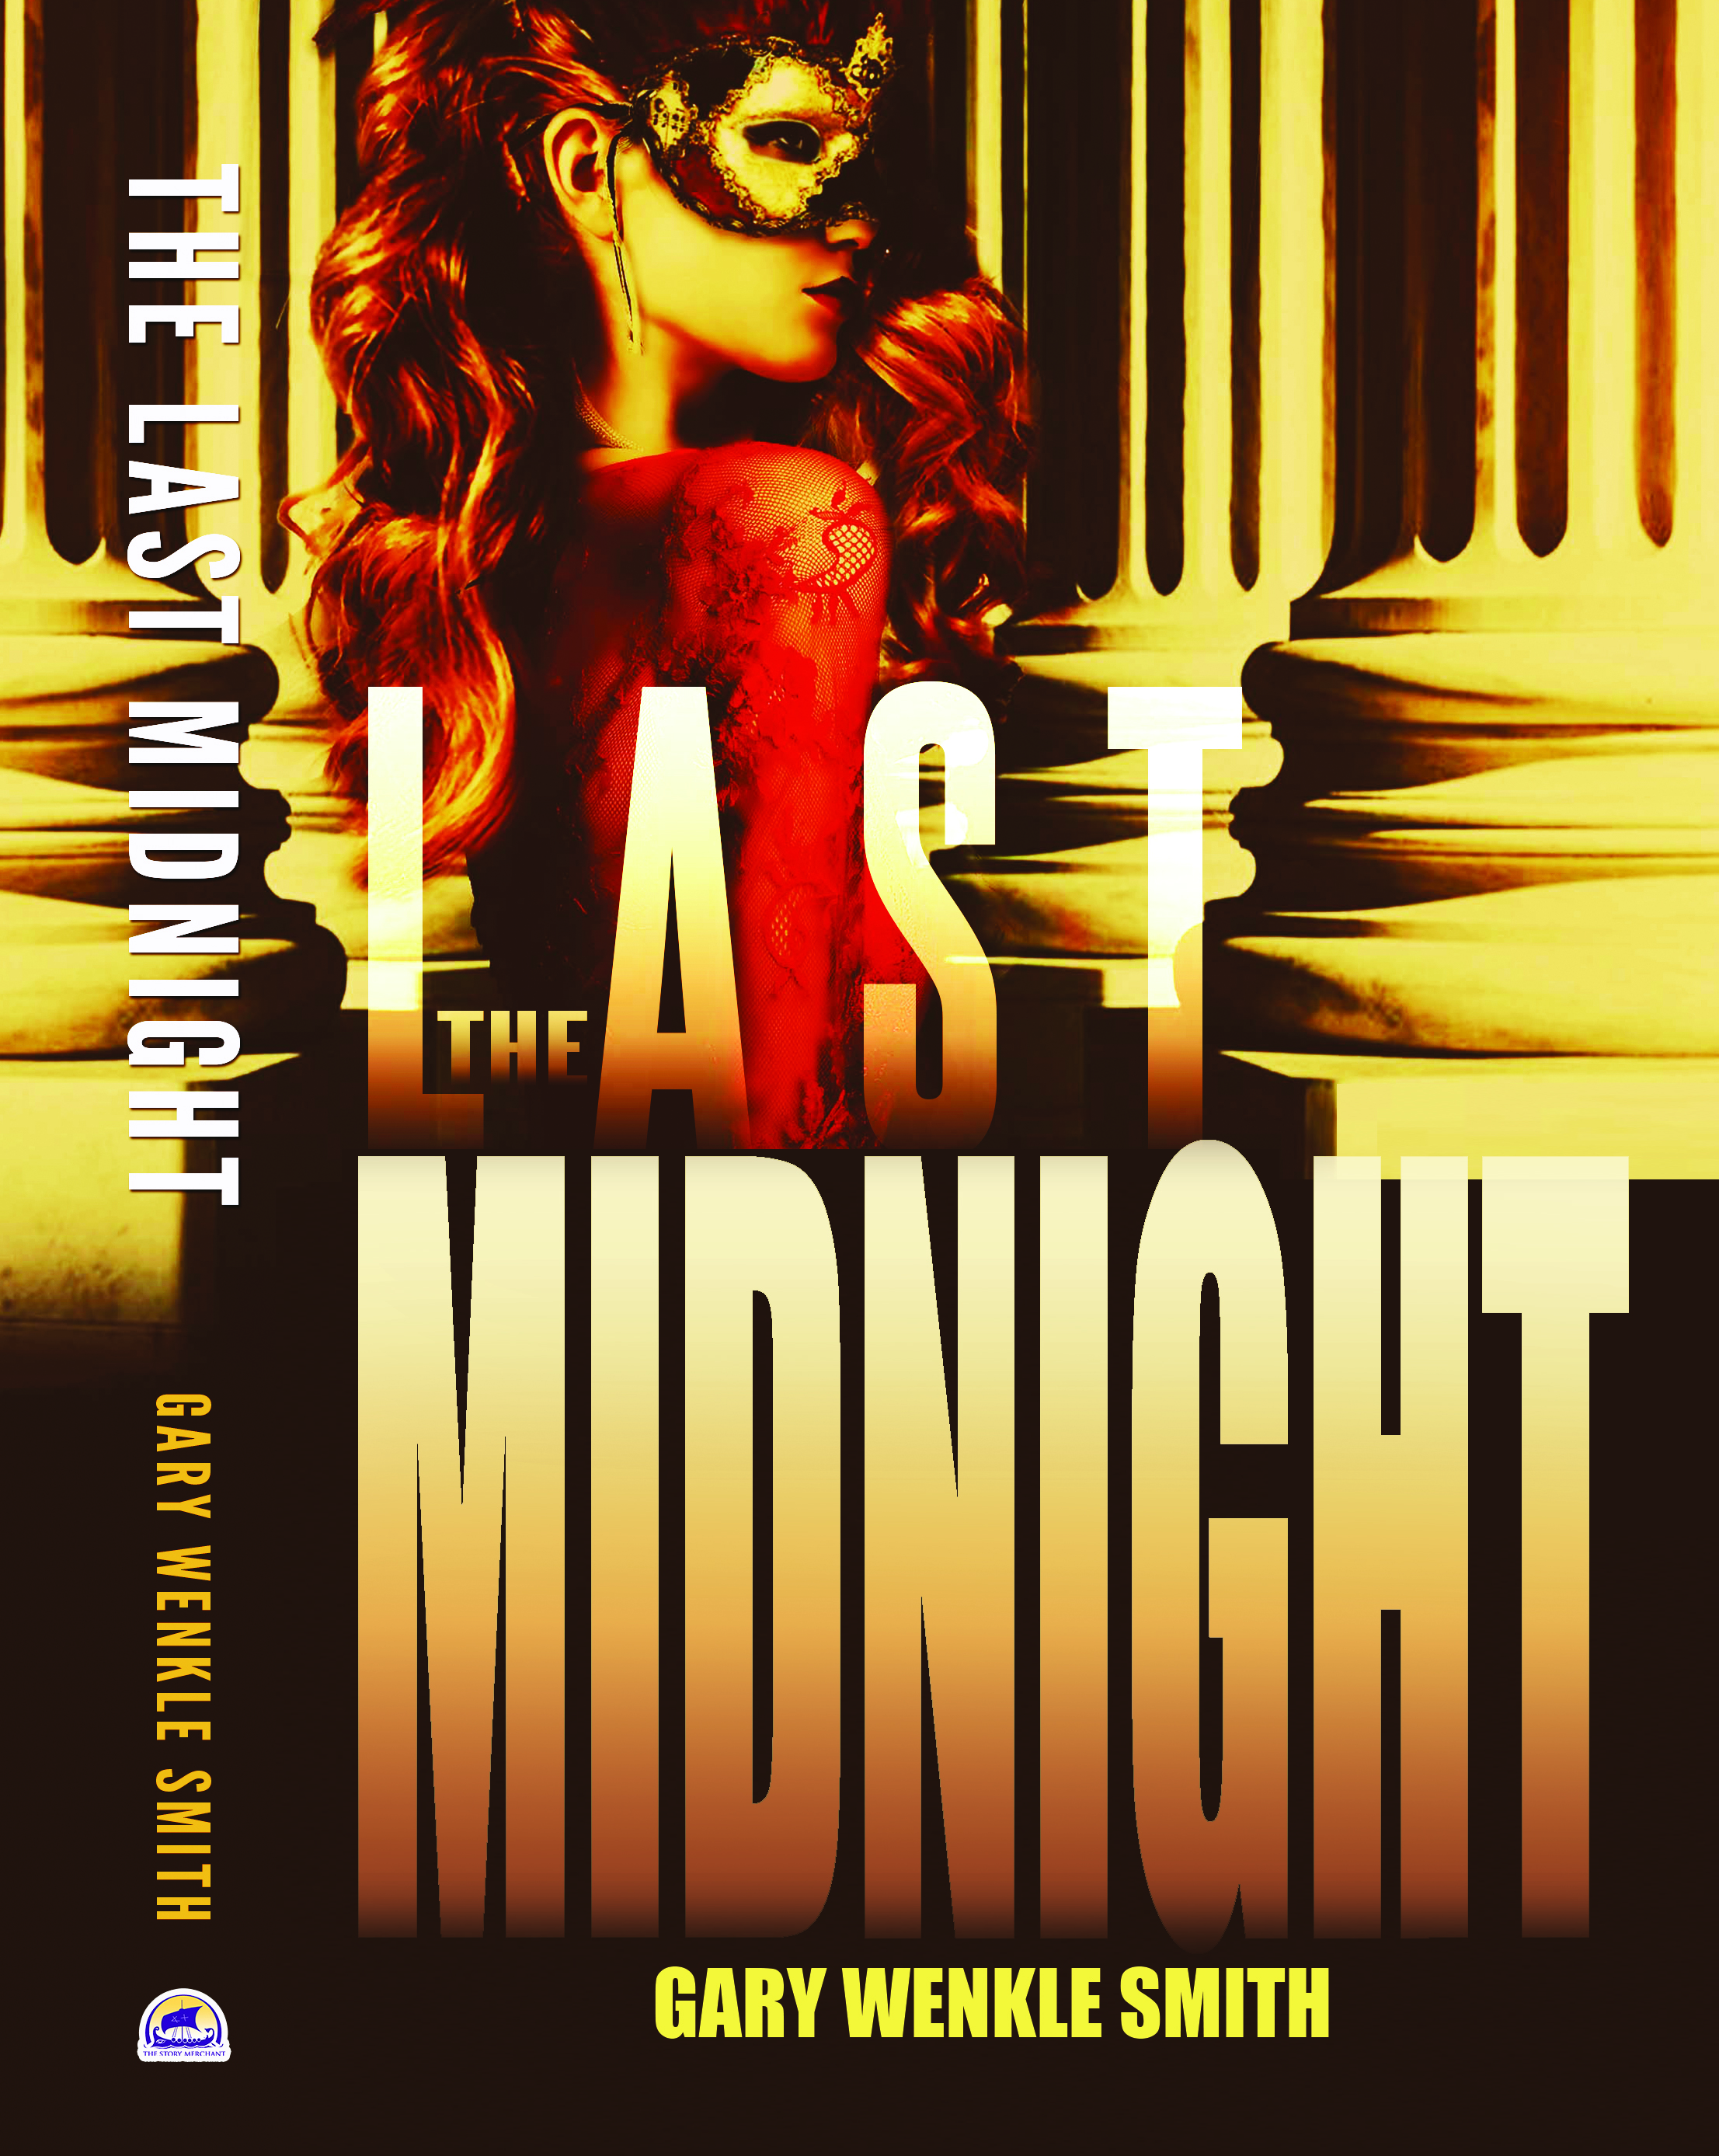 The Last Midnight by Gary Wenkle Smith